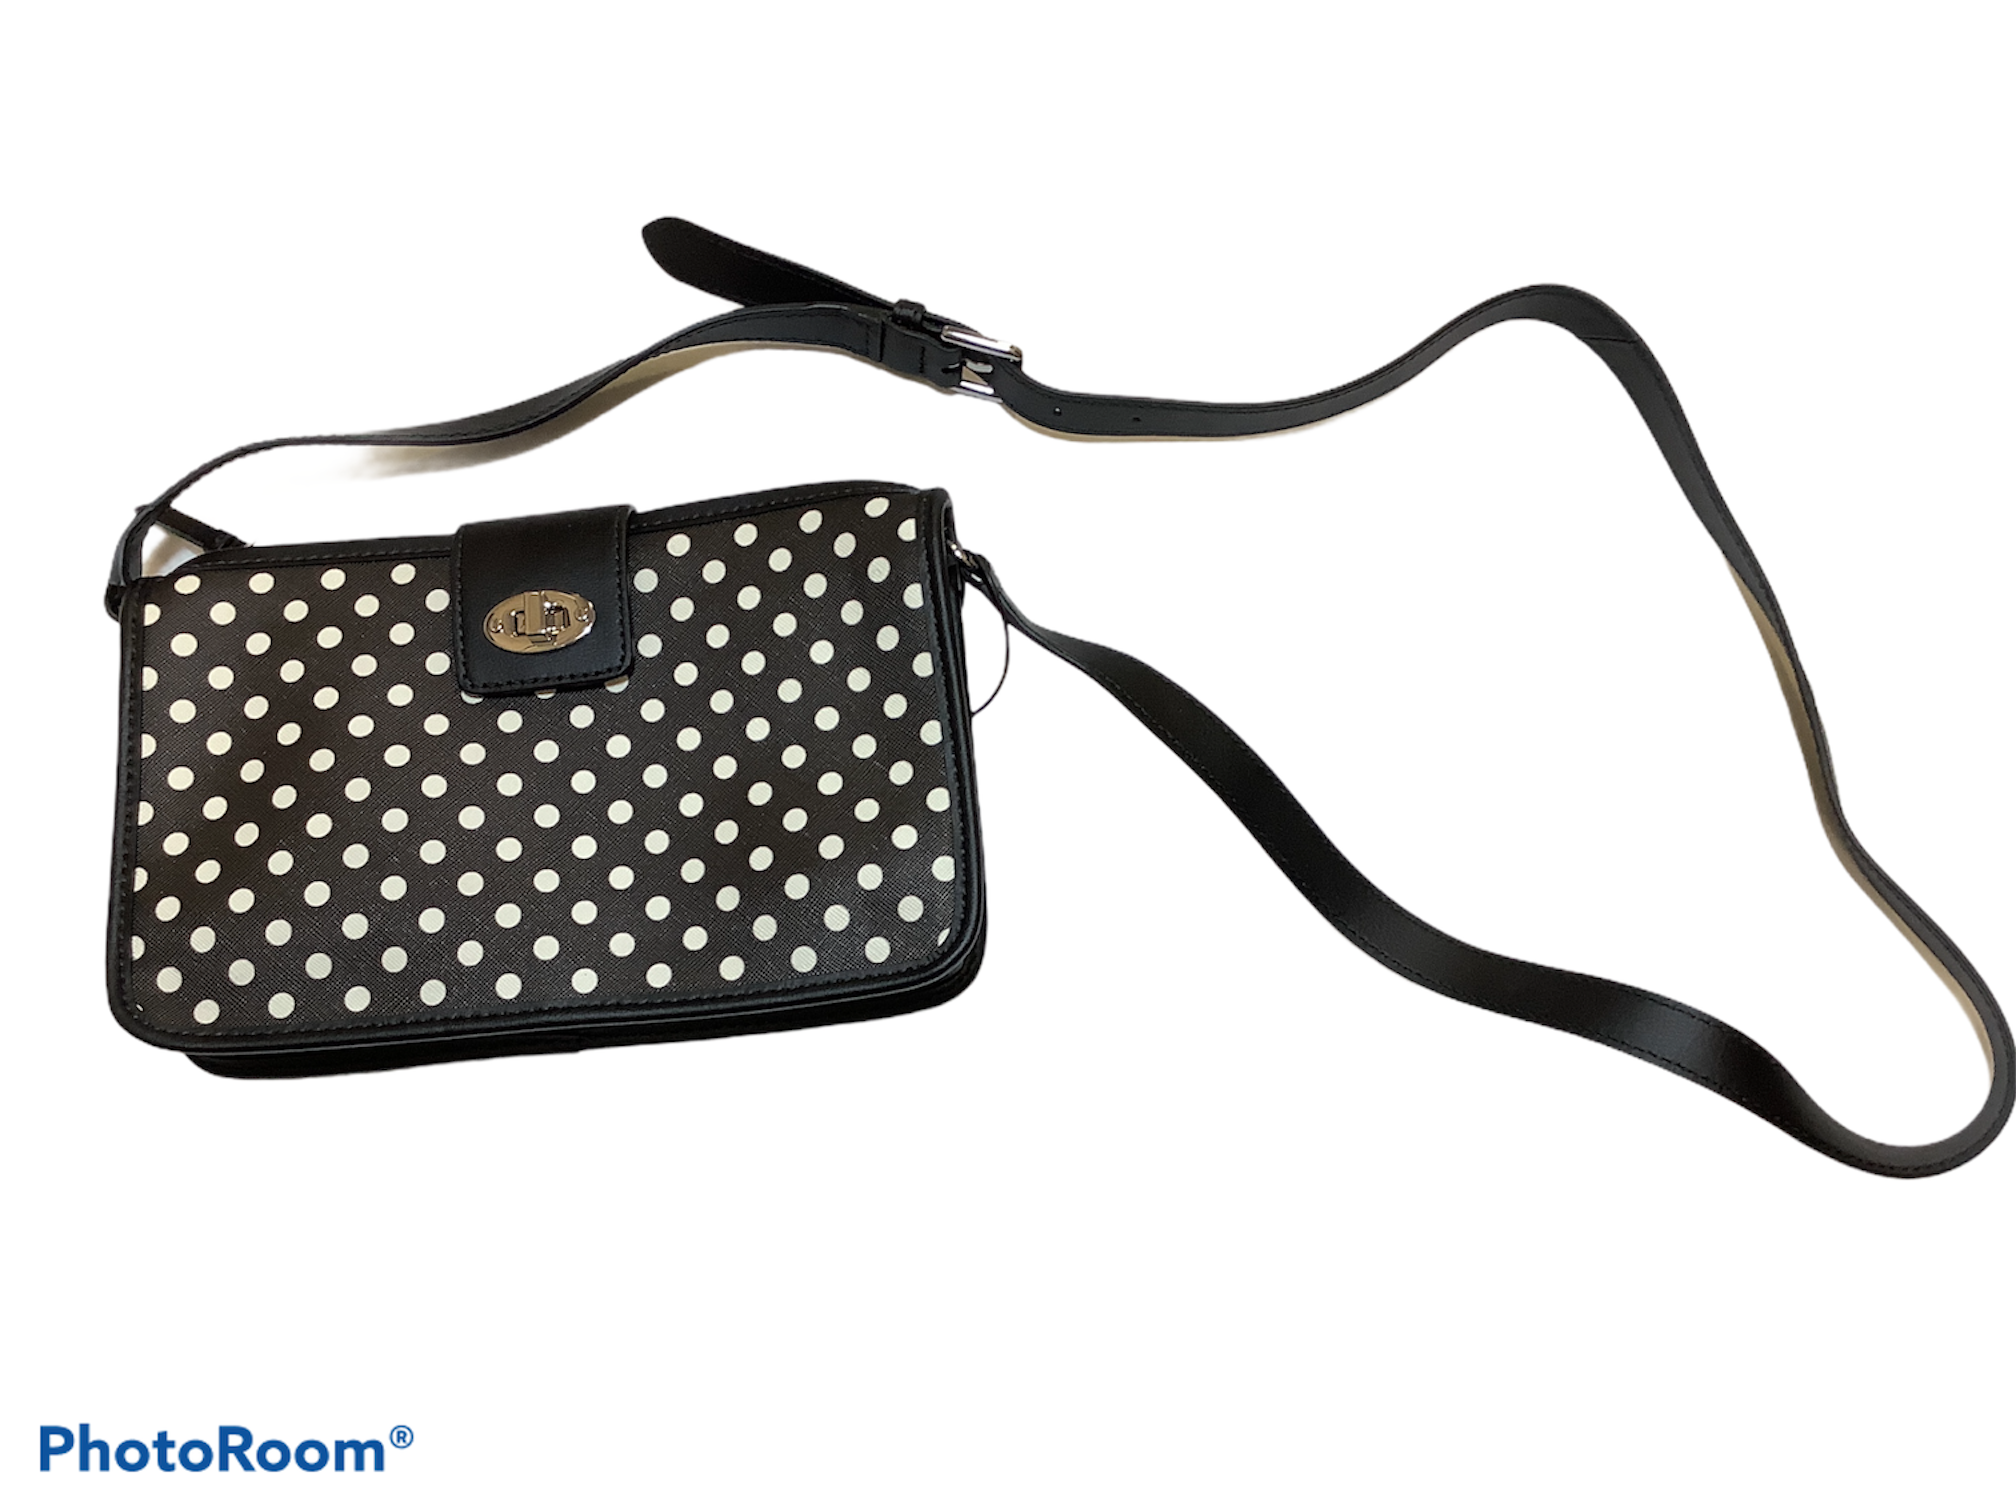 Primary Photo - BRAND: TALBOTS <BR>STYLE: HANDBAG <BR>COLOR: POLKADOT <BR>SIZE: SMALL <BR>SKU: 256-25612-64775